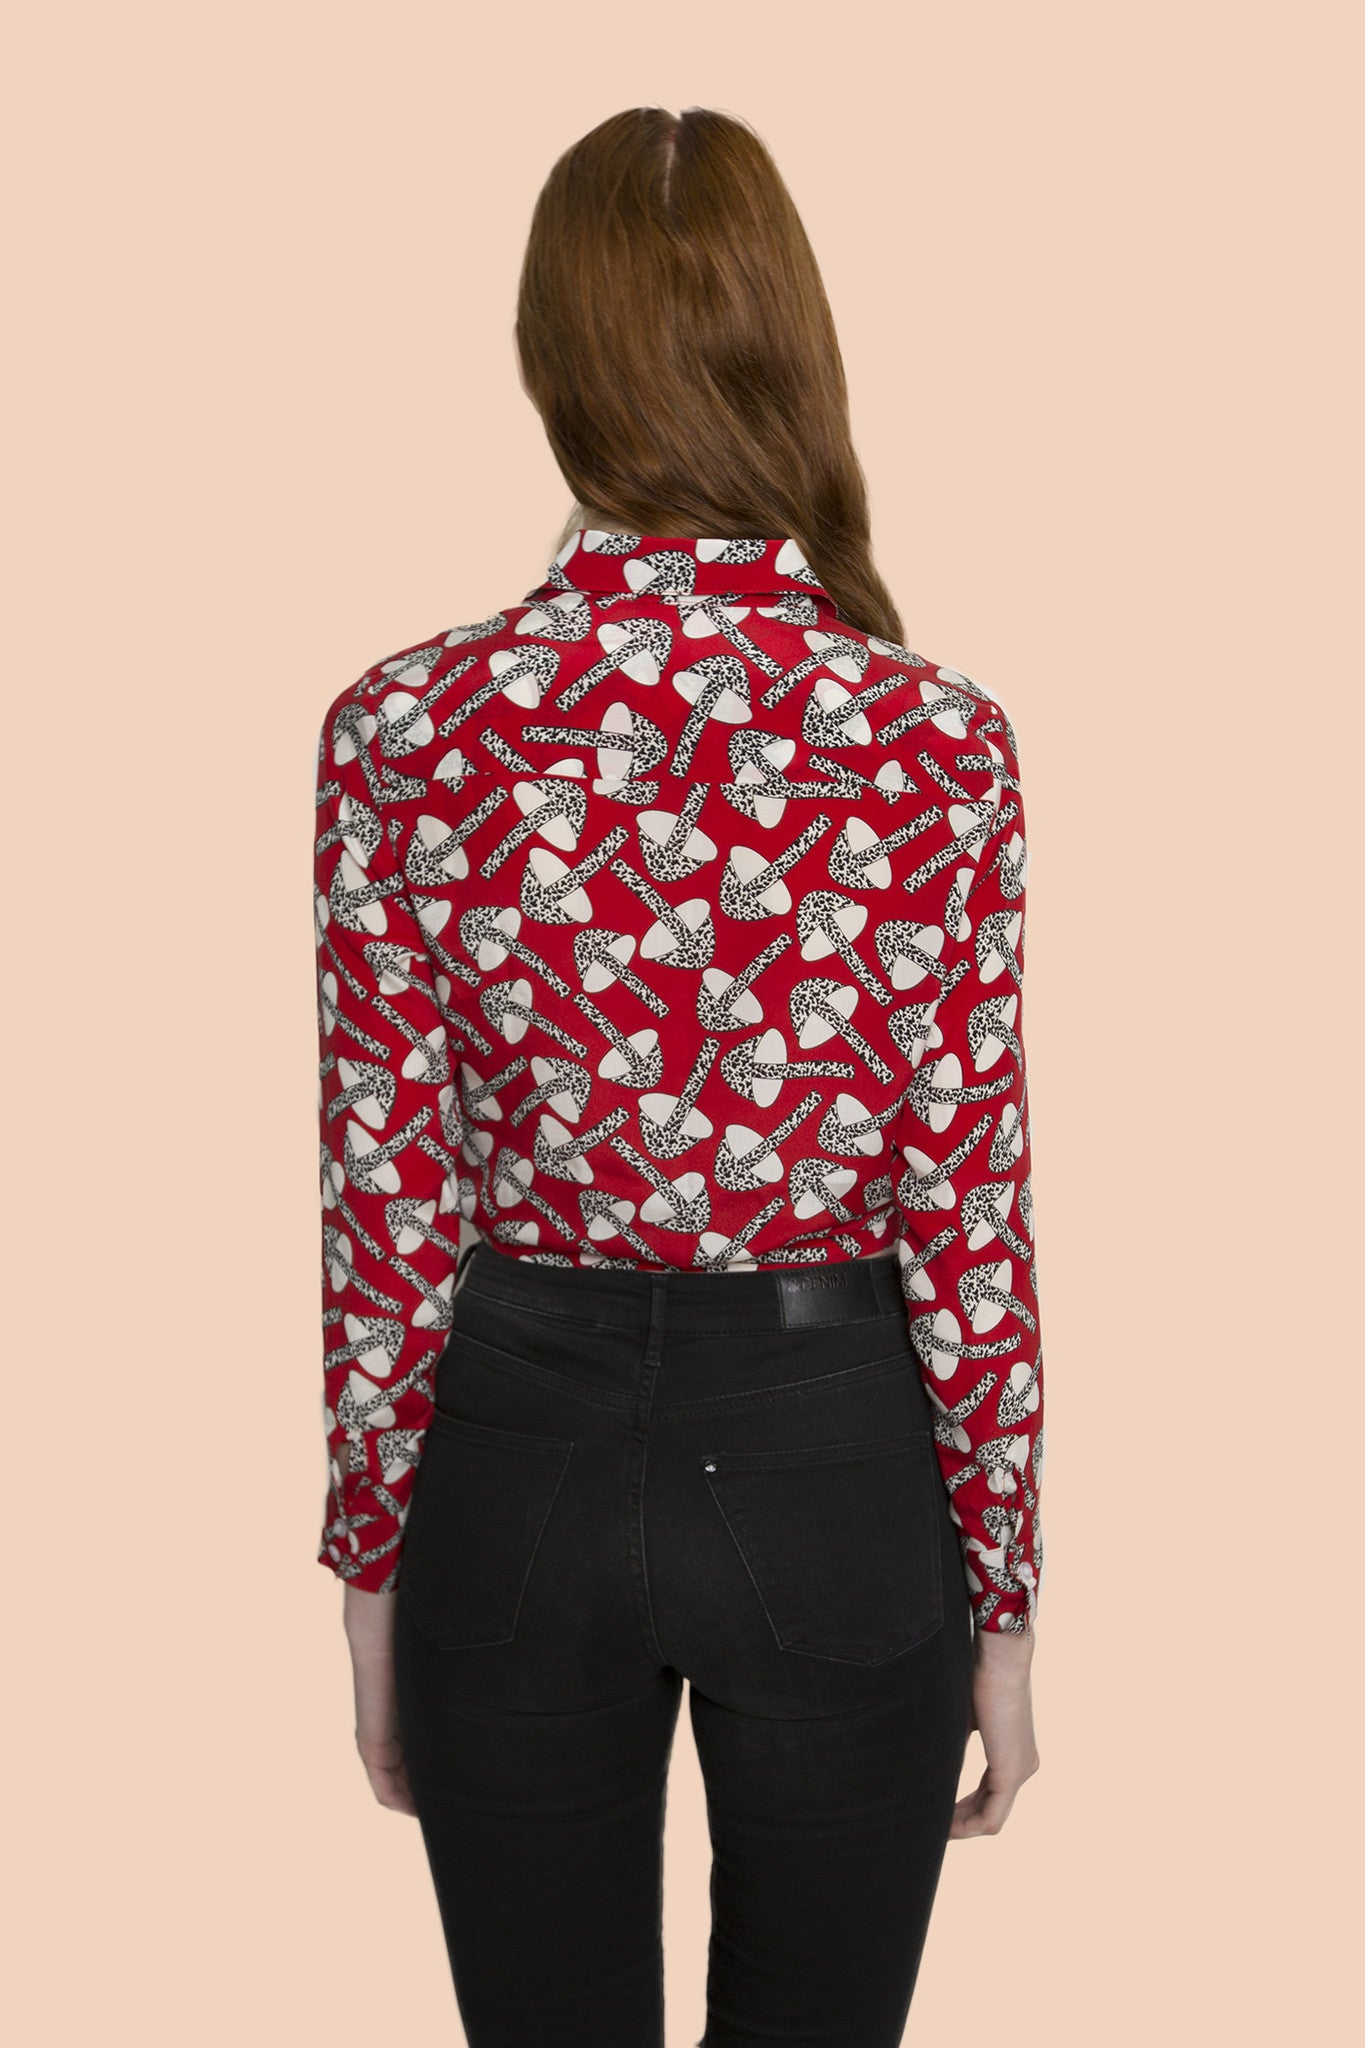 Forest Mushroom design red tone long sleeve shirt